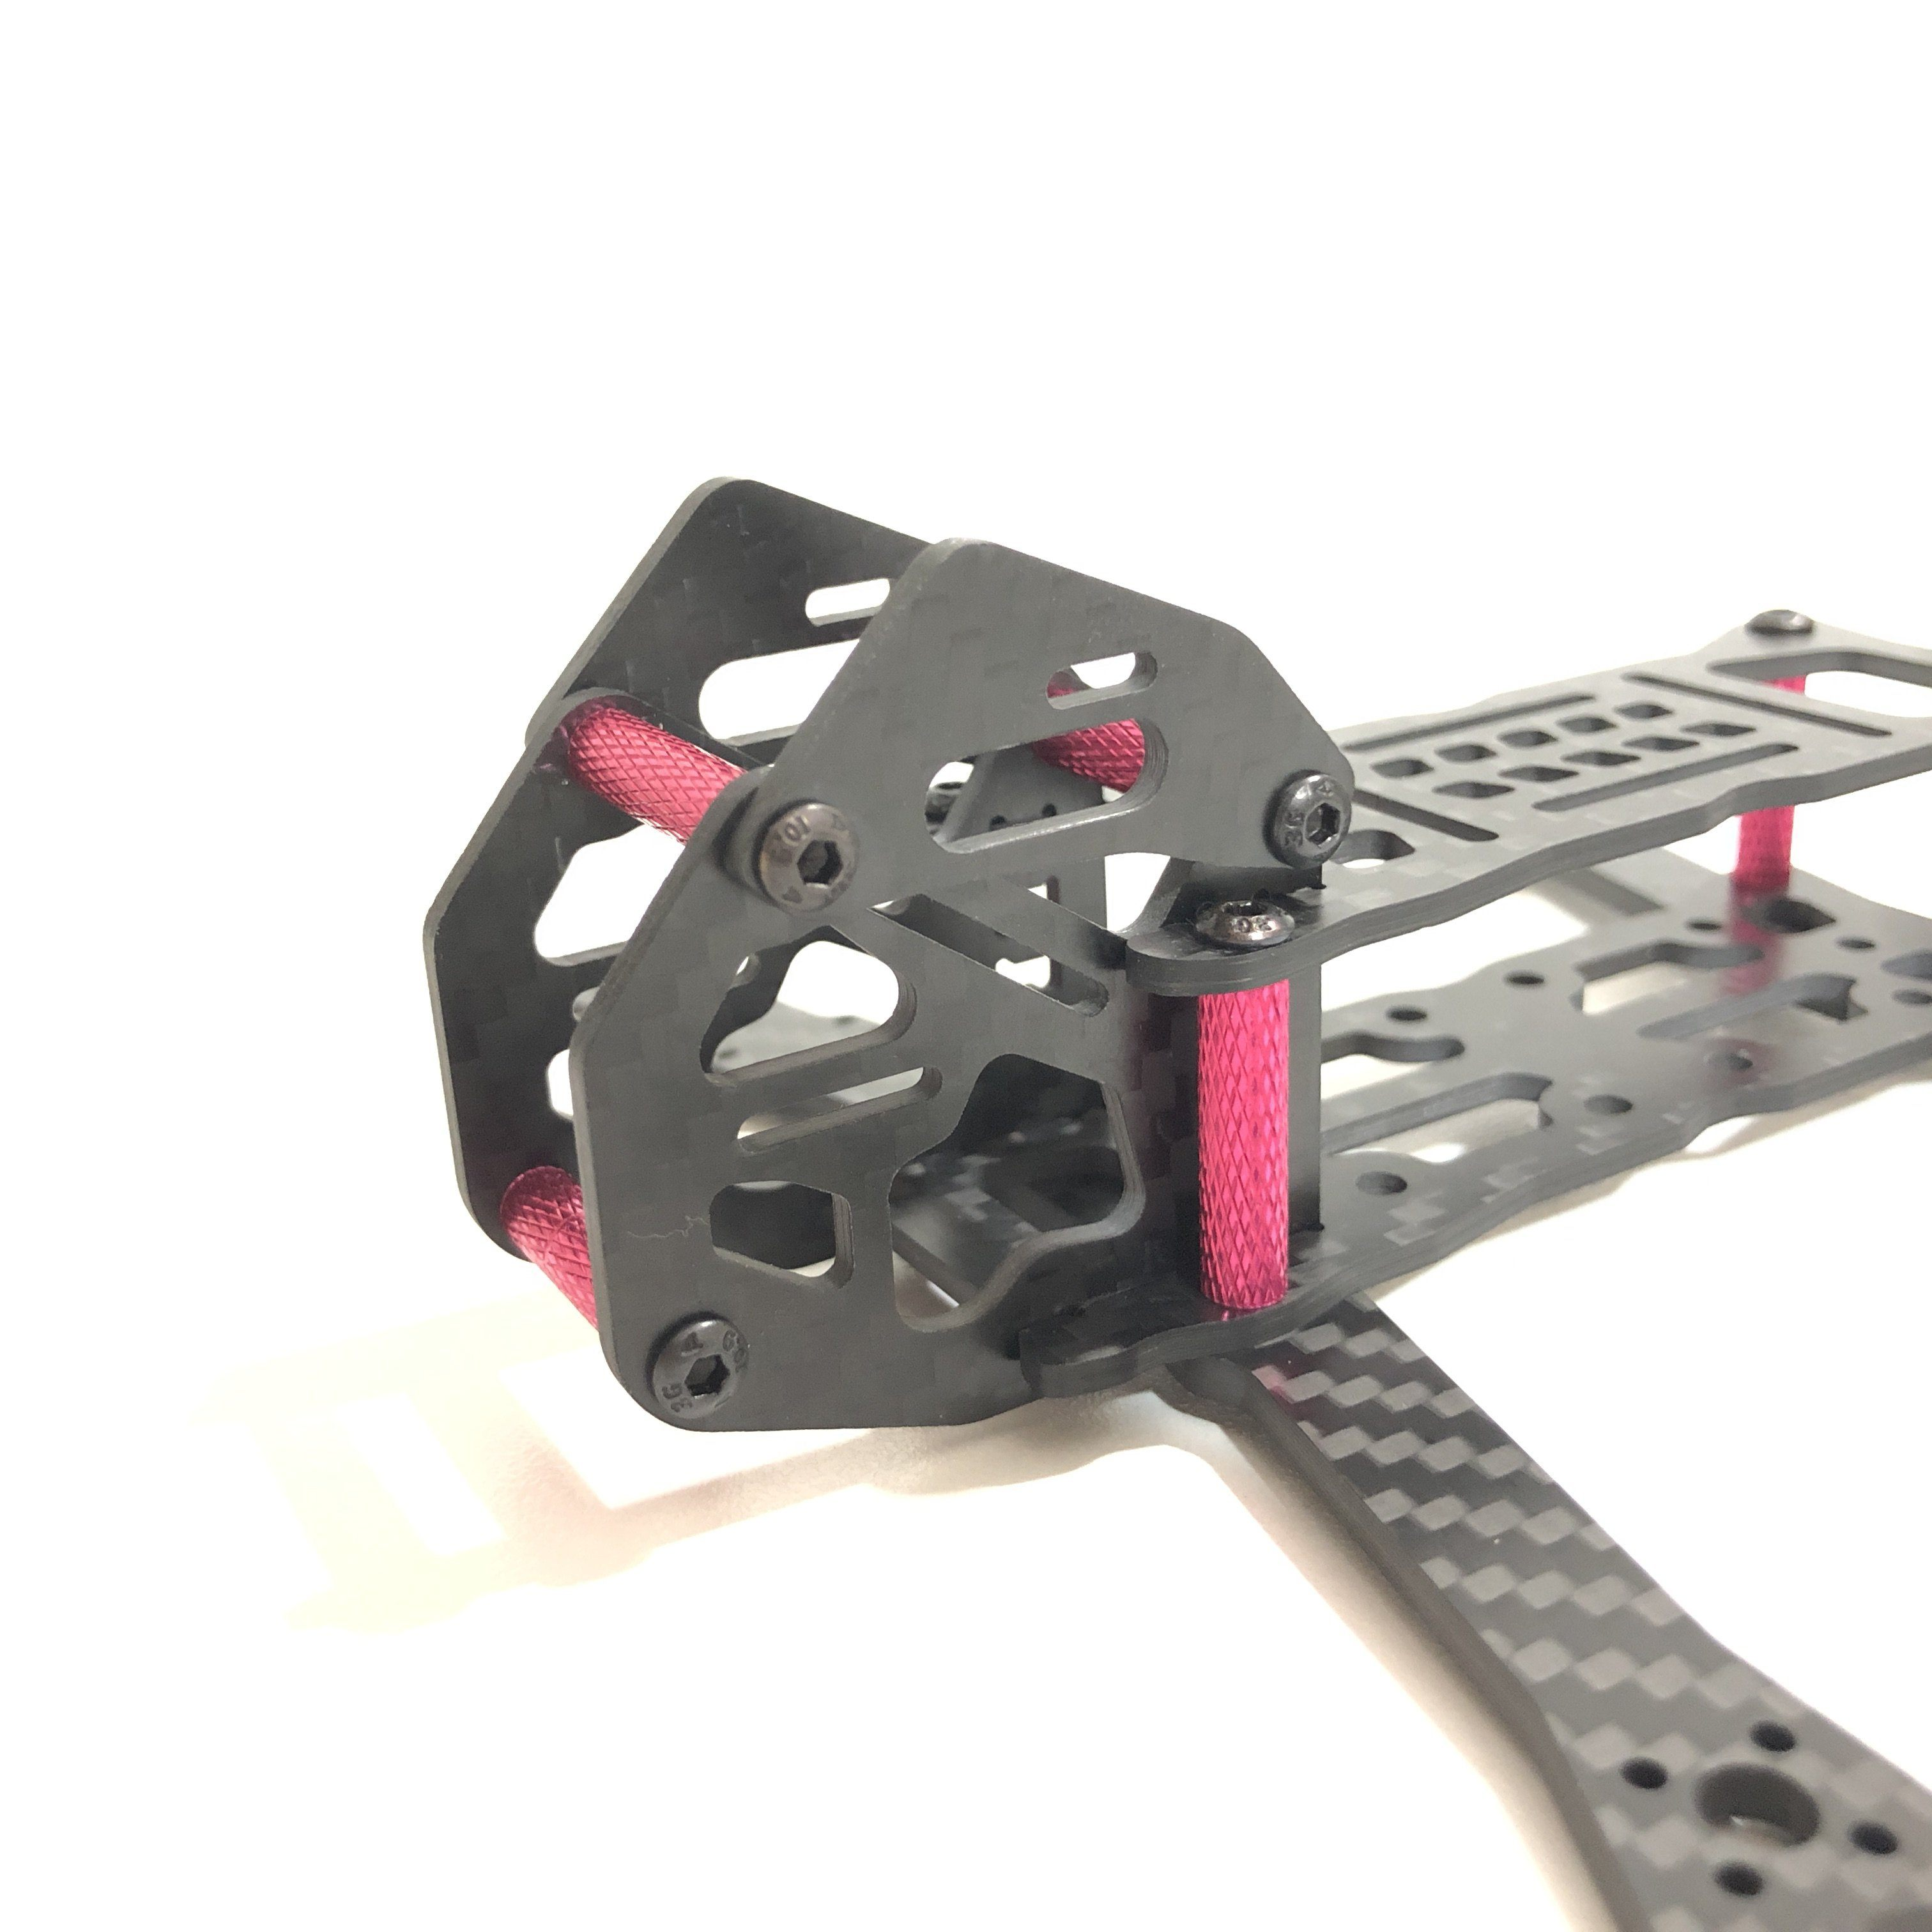 AirBlade Intrepid V2 Soft Mount Camera Plates AirBlade UAV